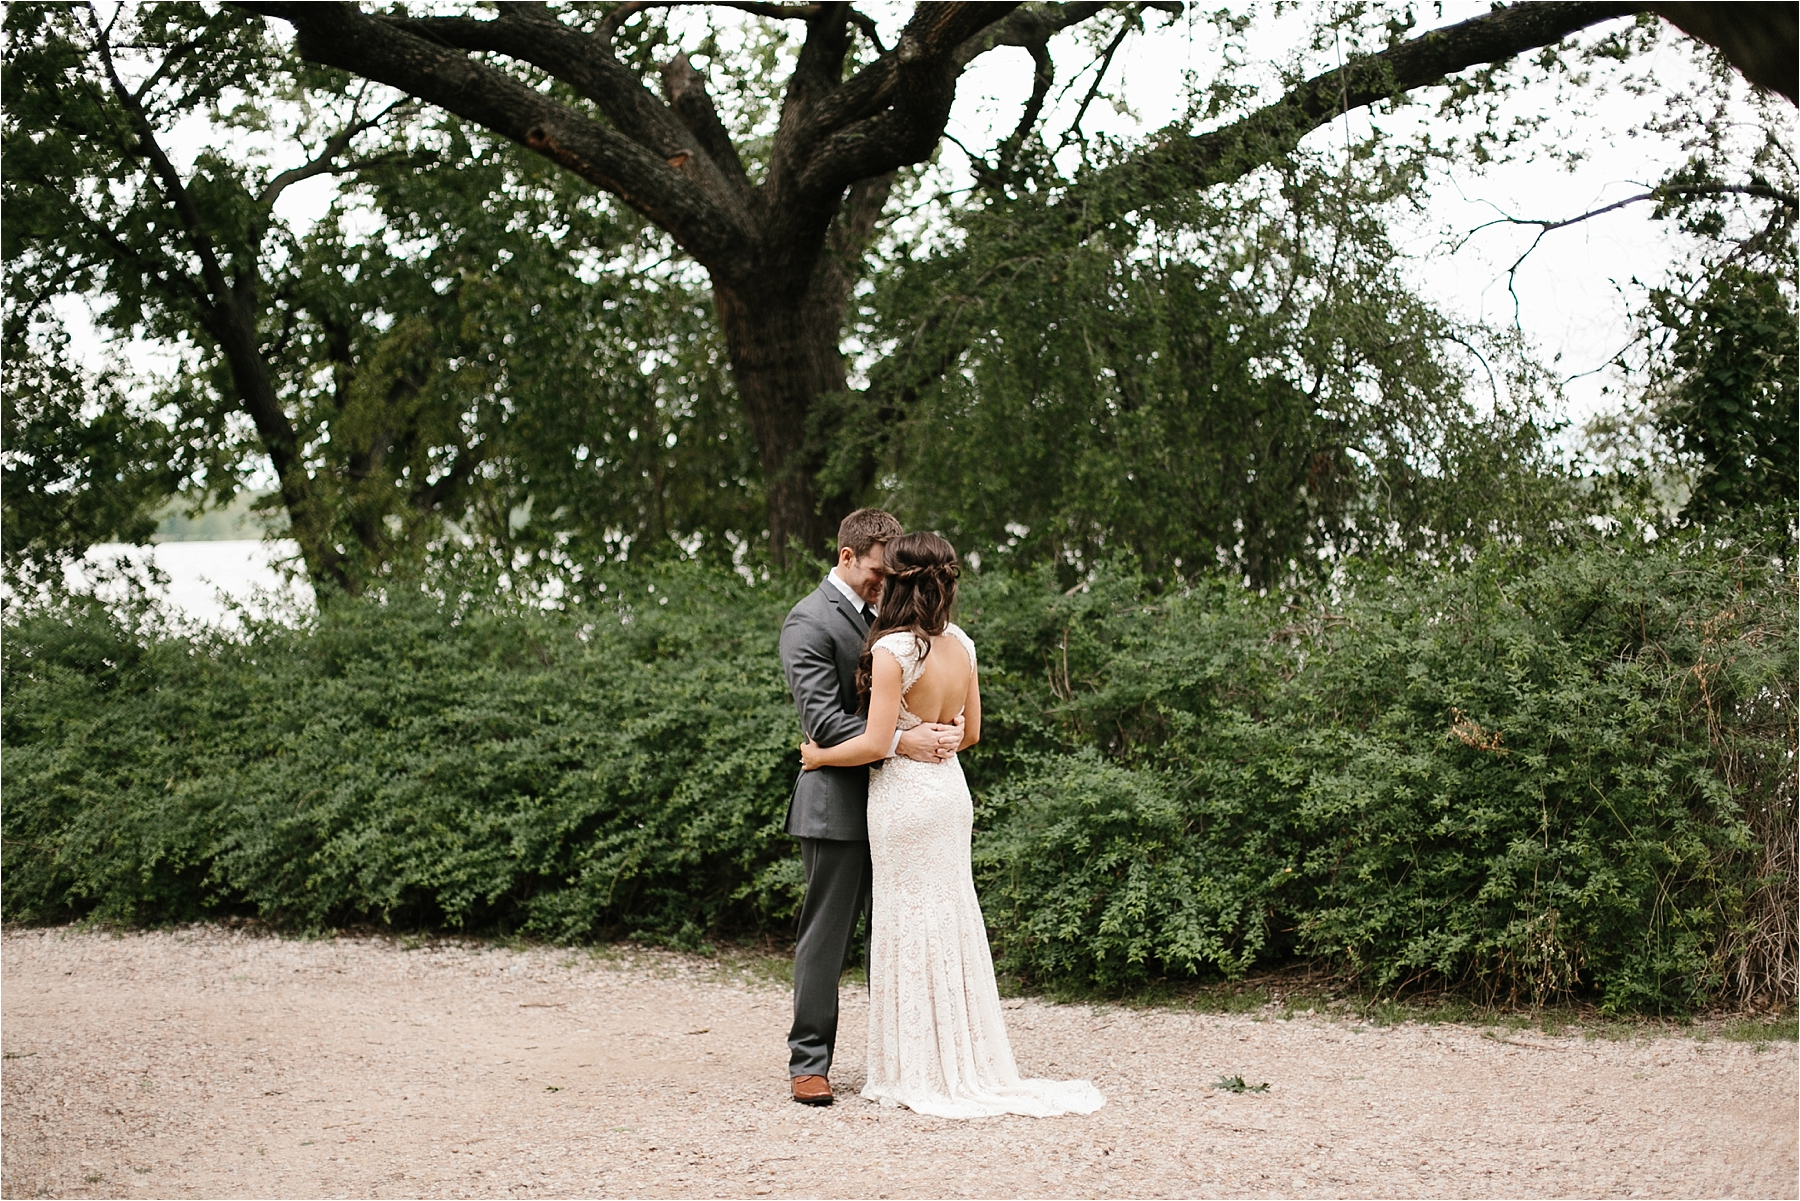 Devyn + Caden __ a Dallas Arboretum Garden Style Wedding by North Texas Wedding Photographer Rachel Meagan Photography __ 026